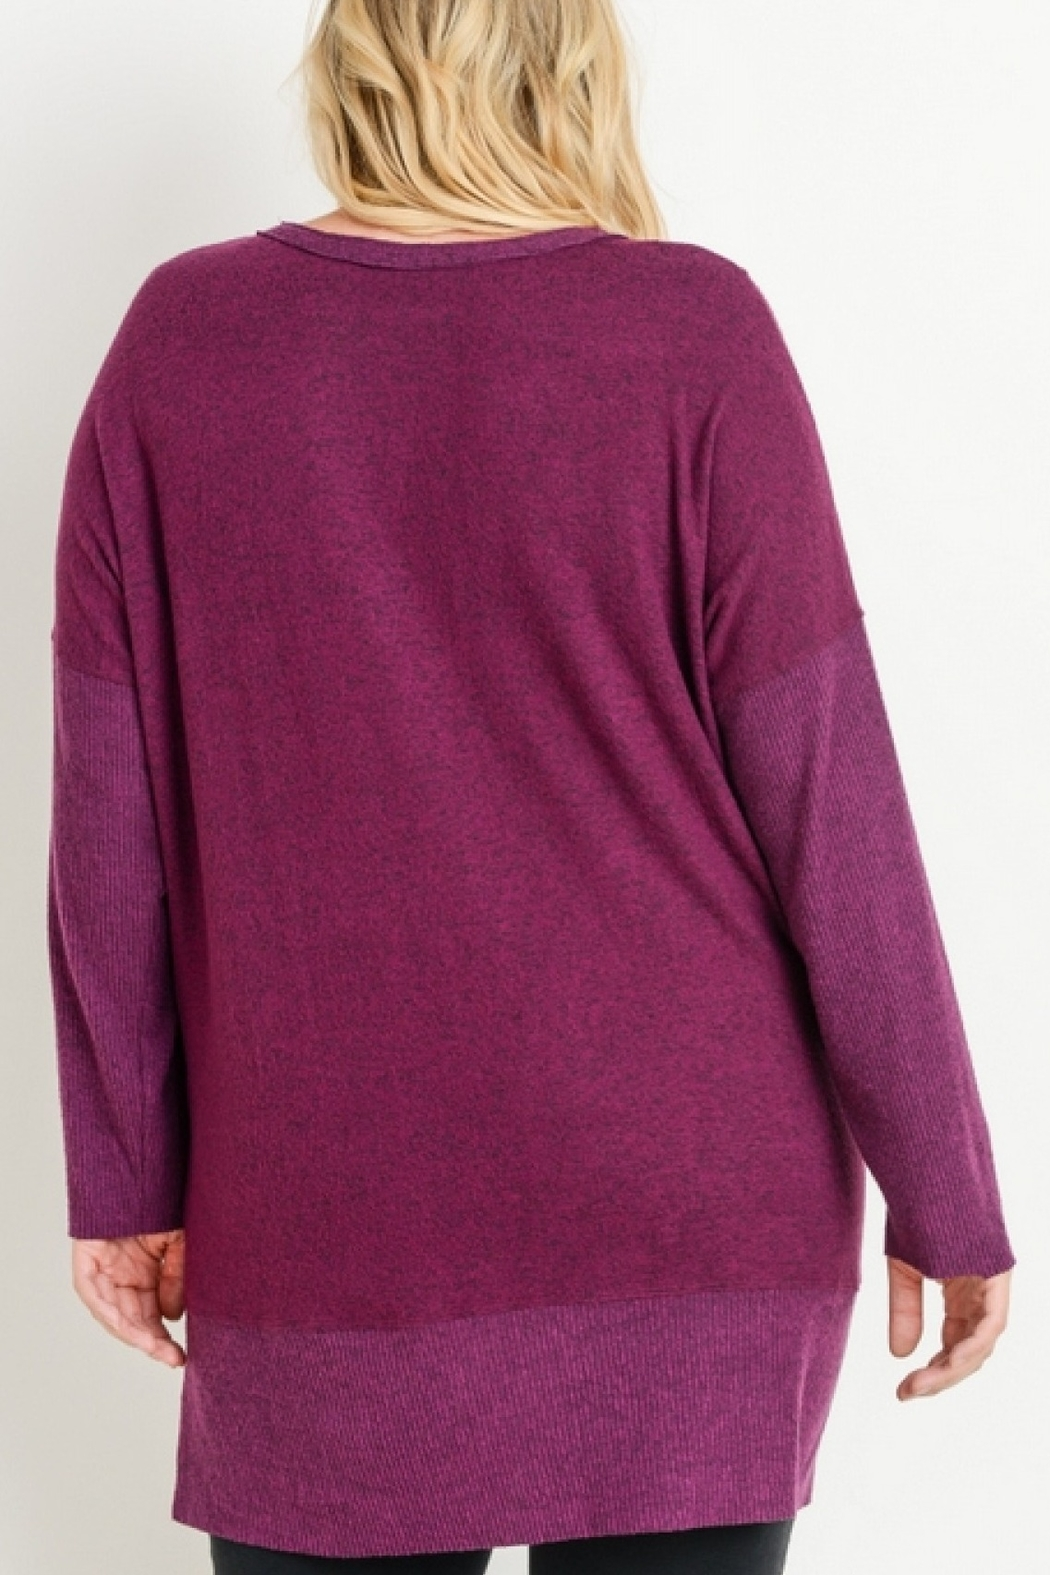 JODIFIL OVERSIZED VNECK SWEATER - Front Full Image